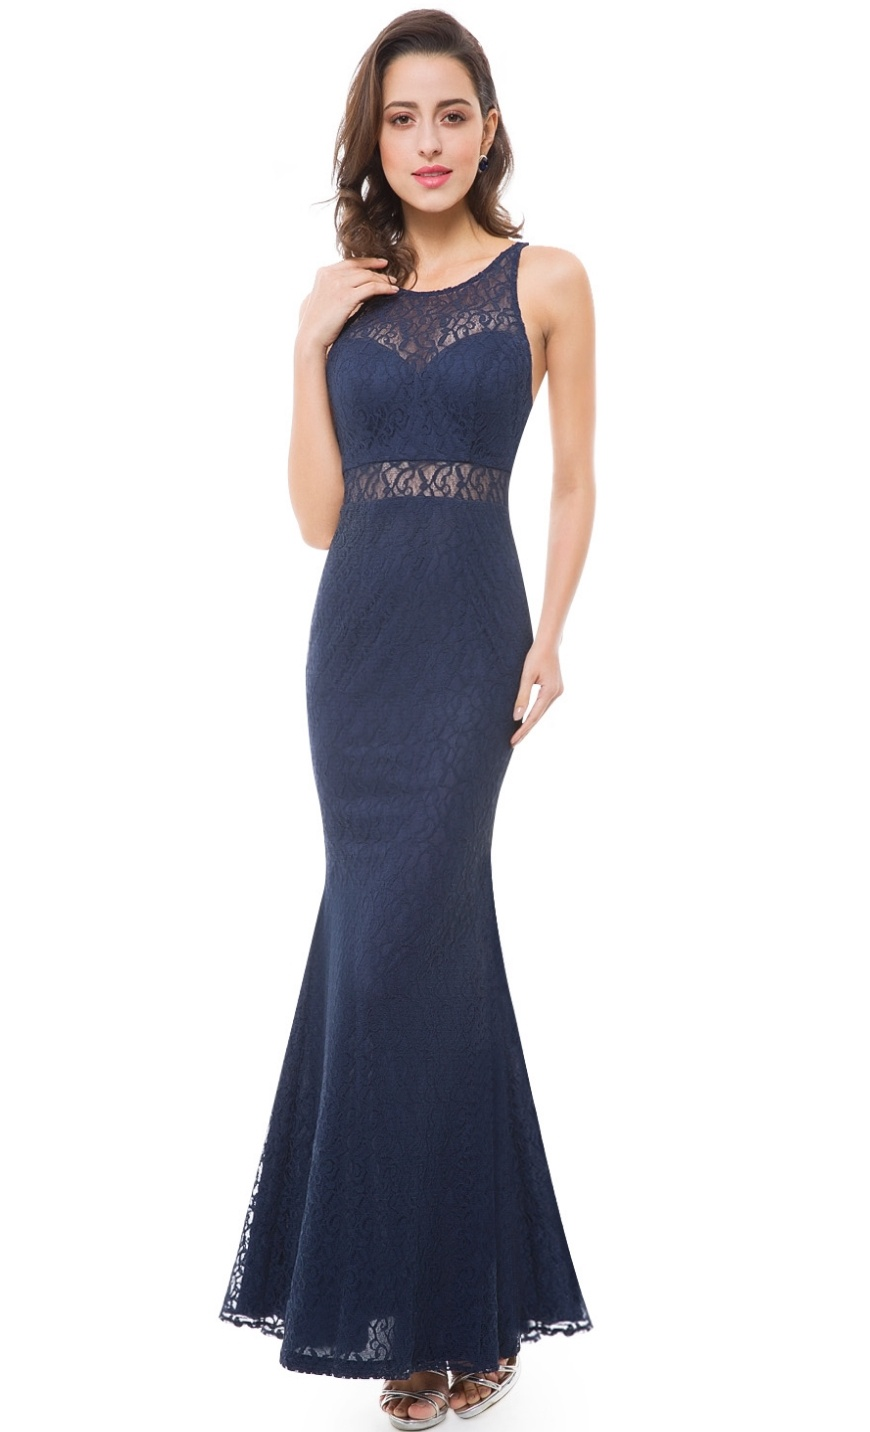 Floor Length Gown - Navy Lace Evening Mermaid Maxi Dress, NEW